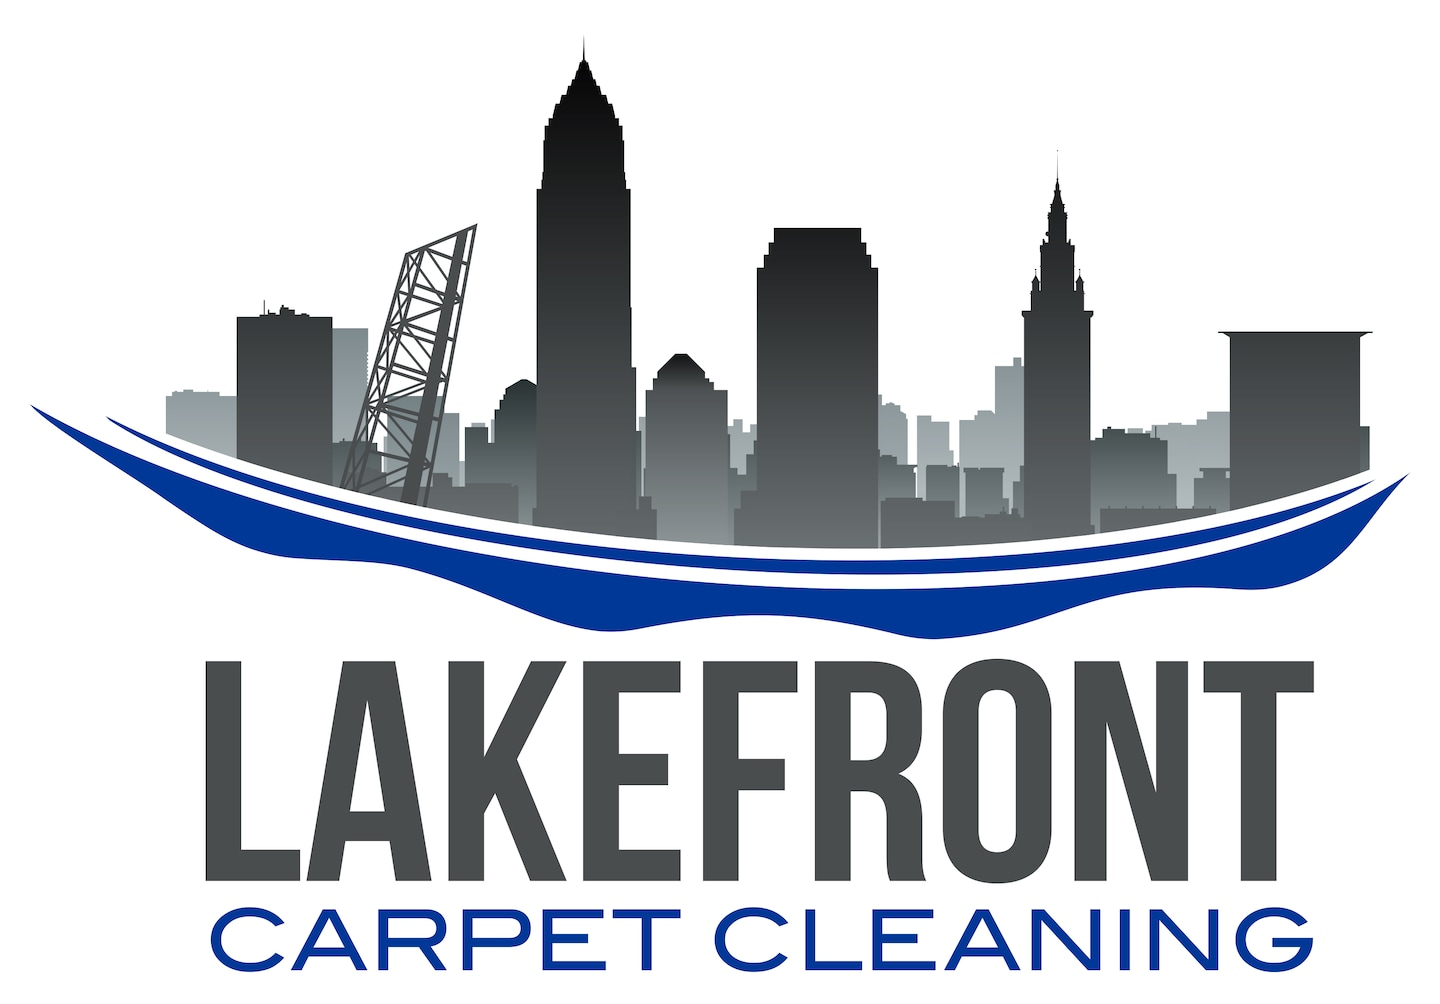 LakeFront Carpet Cleaning